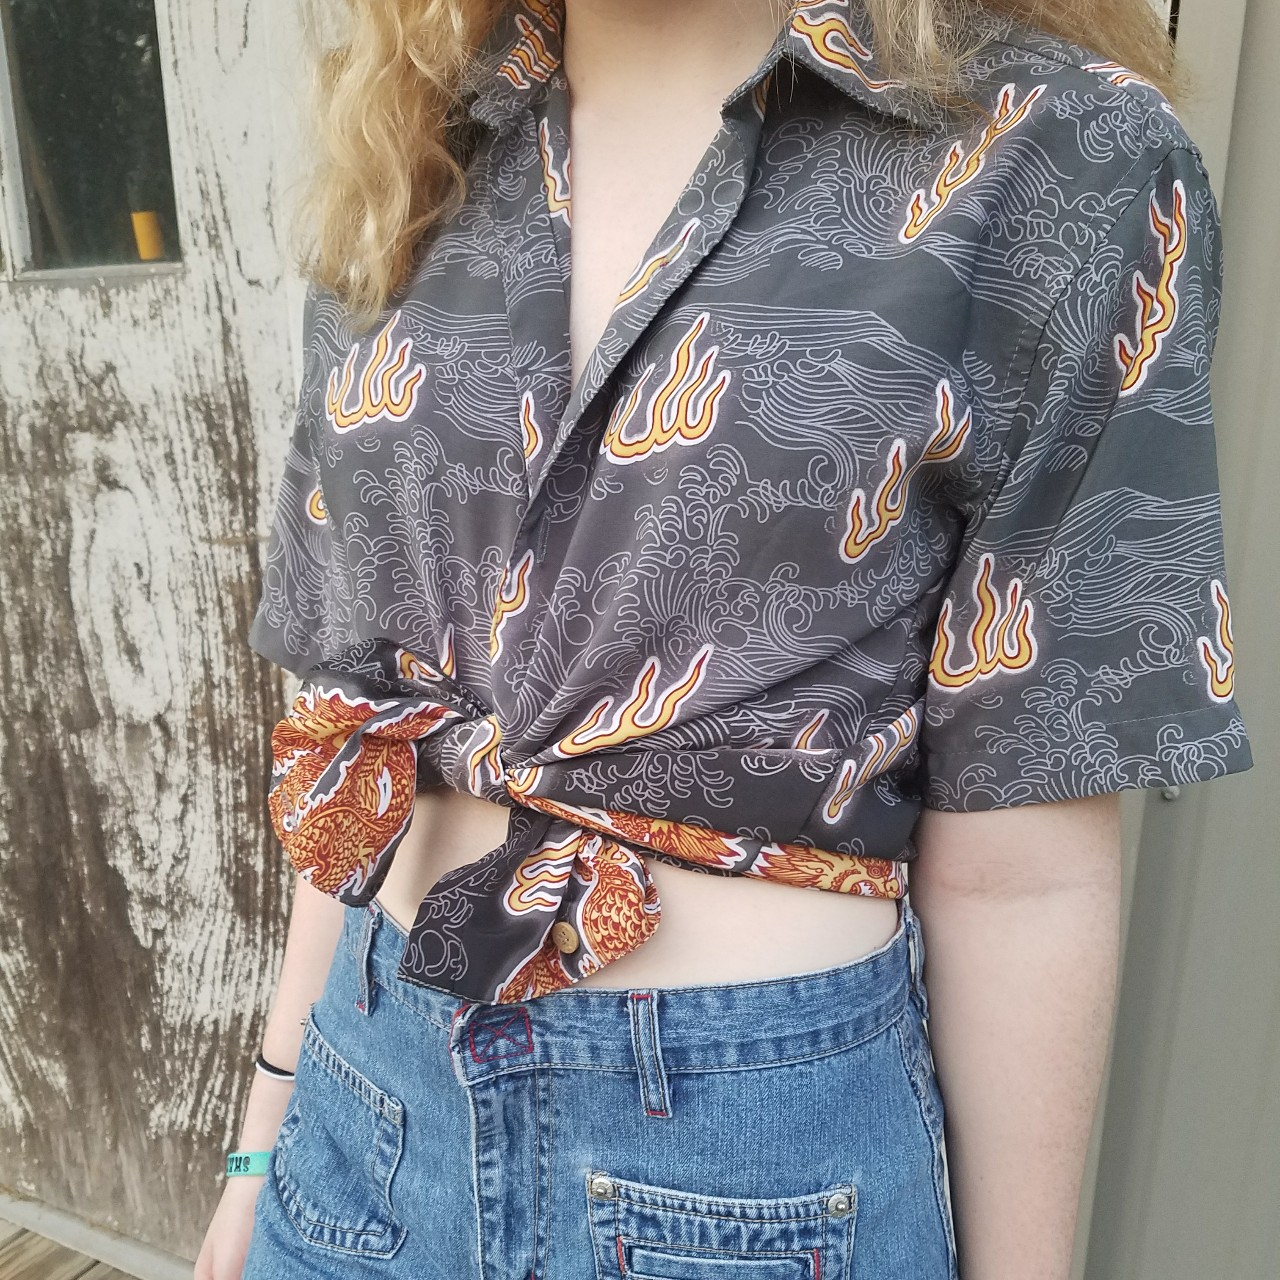 😎Y2K DRAGON SHIRT😎 Button up top with dragons all    - Depop